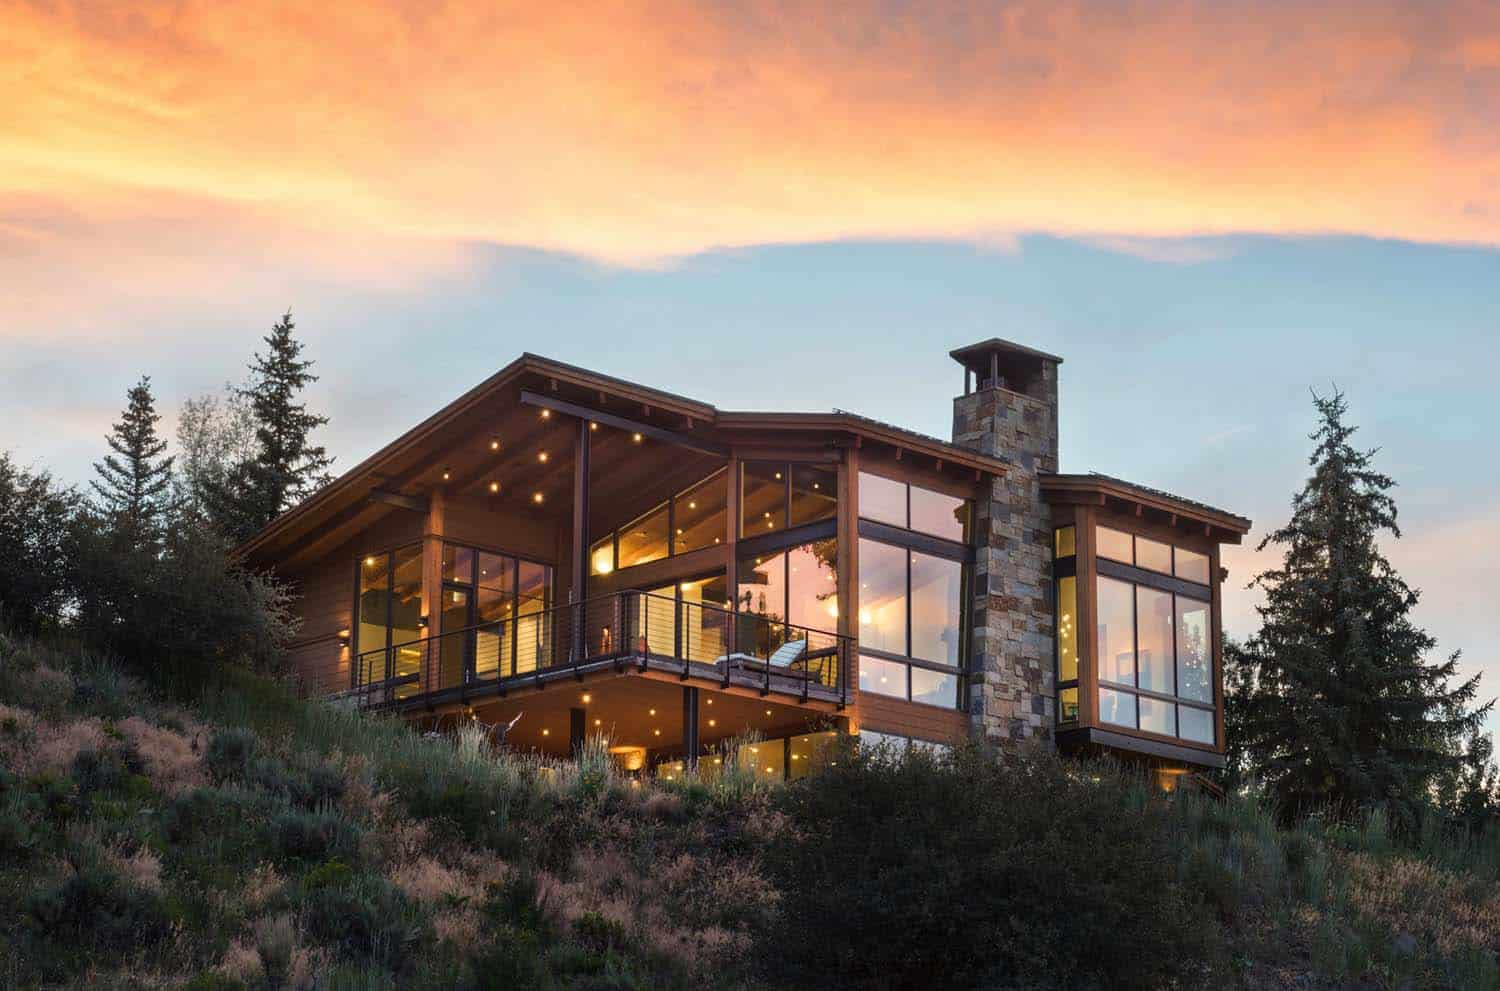 Contemporary Mountain Home Renovation-Berglund Architects-17-1 Kindesign